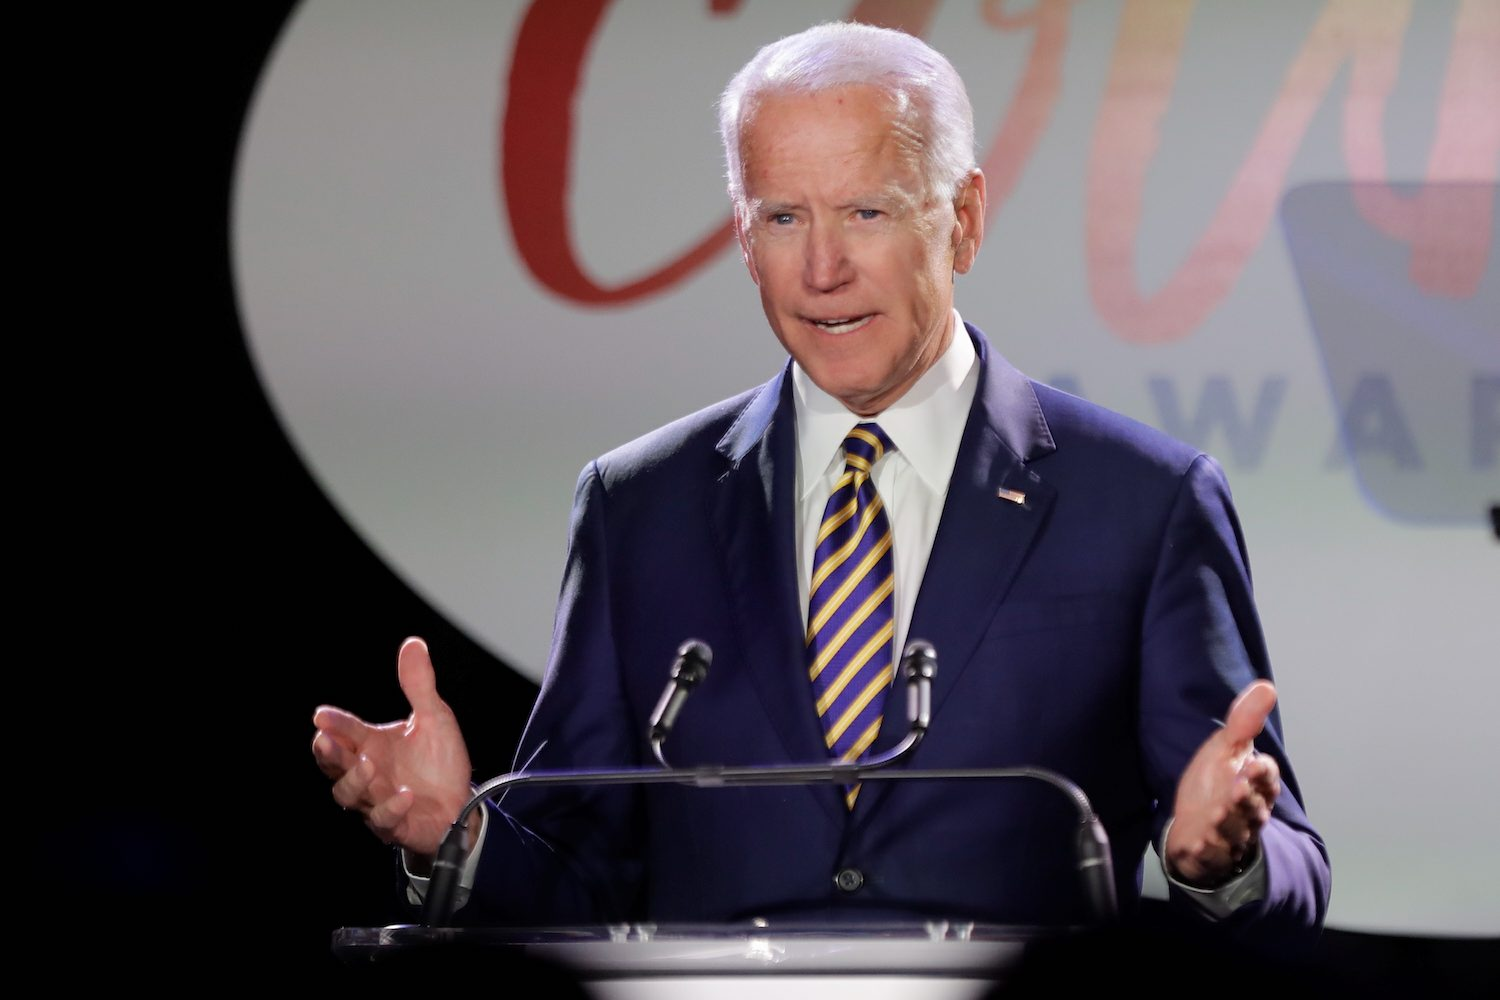 Inside the Beltway: 'Don't Know' and Biden lead Democratic field